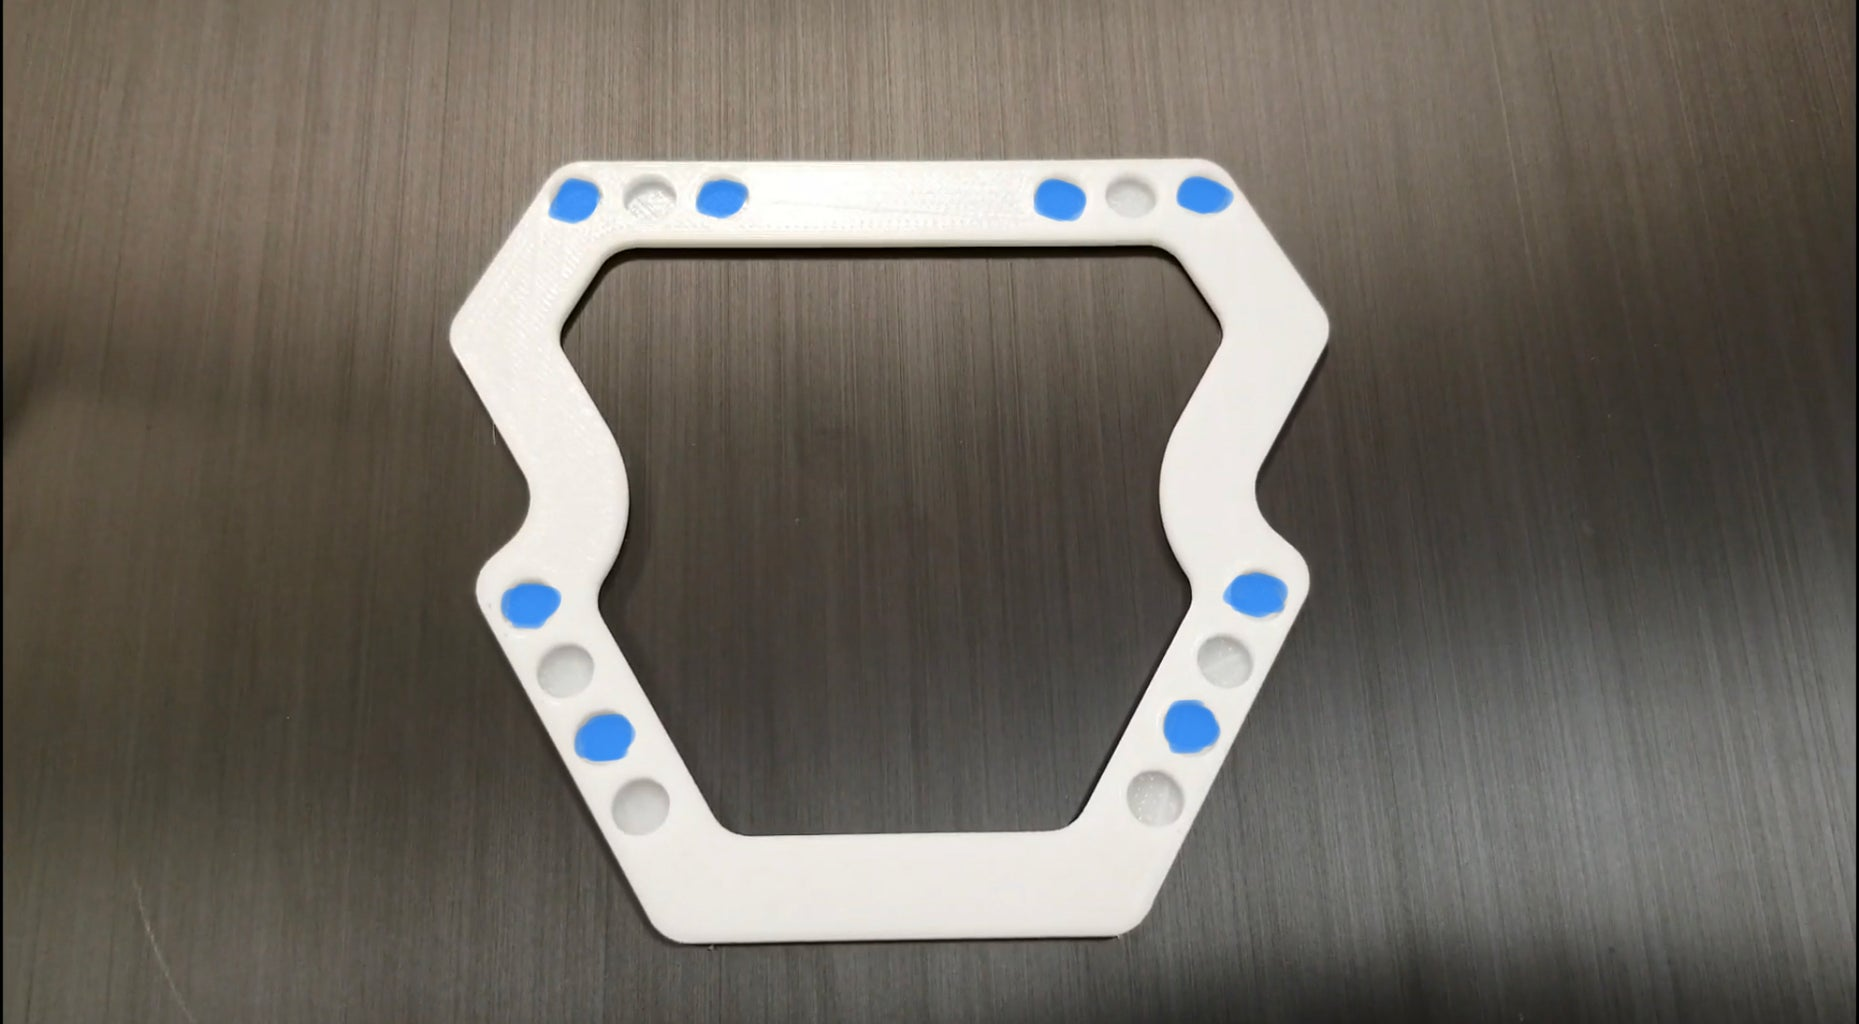 Magnetic Back Plate and Harness System